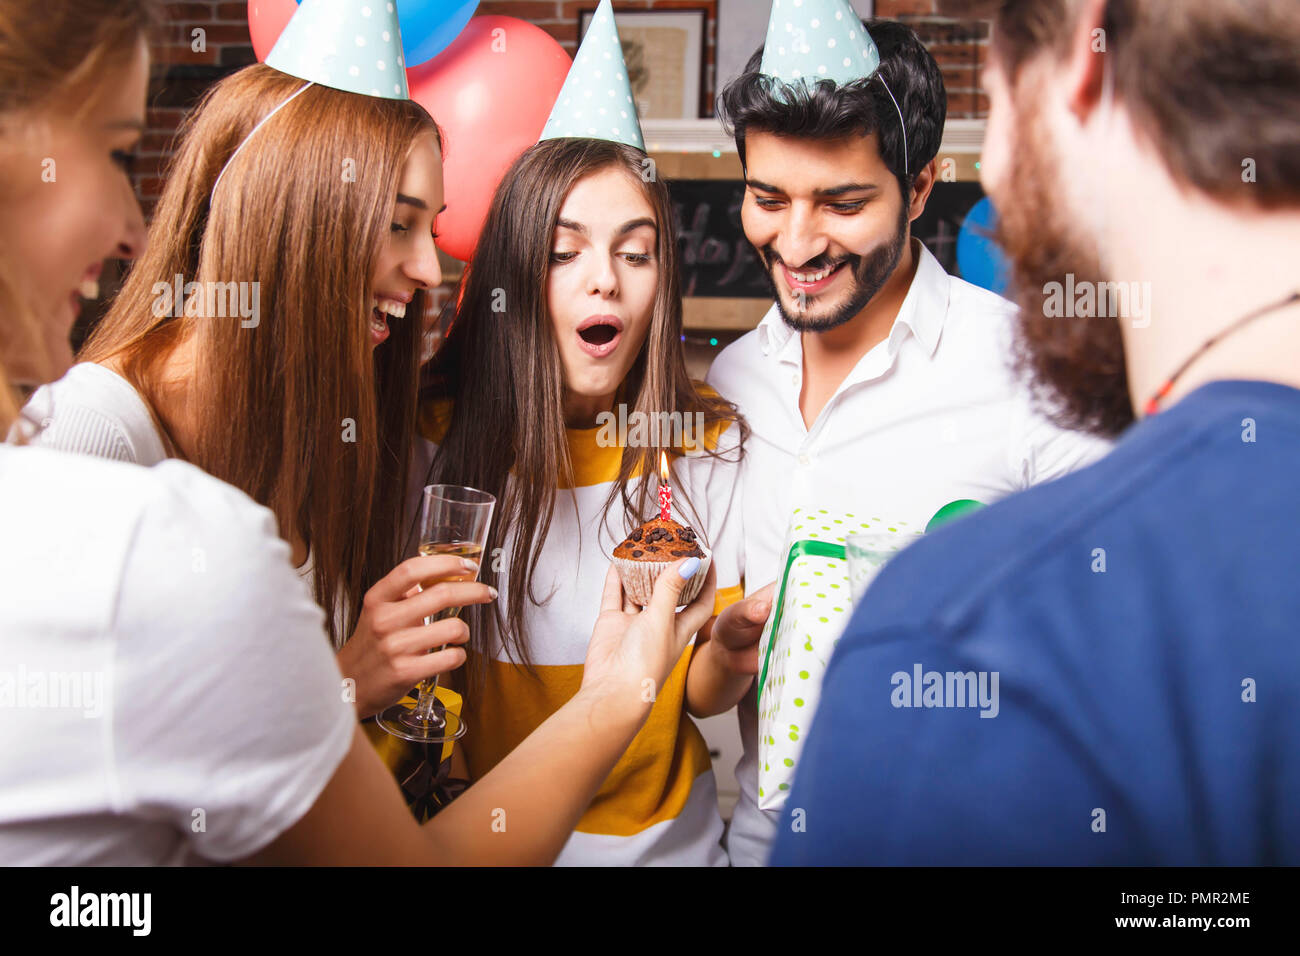 Excited brunette birthday girl ready to blow out candle on birthday cupcake at the birthday party at the kitchen - Stock Image